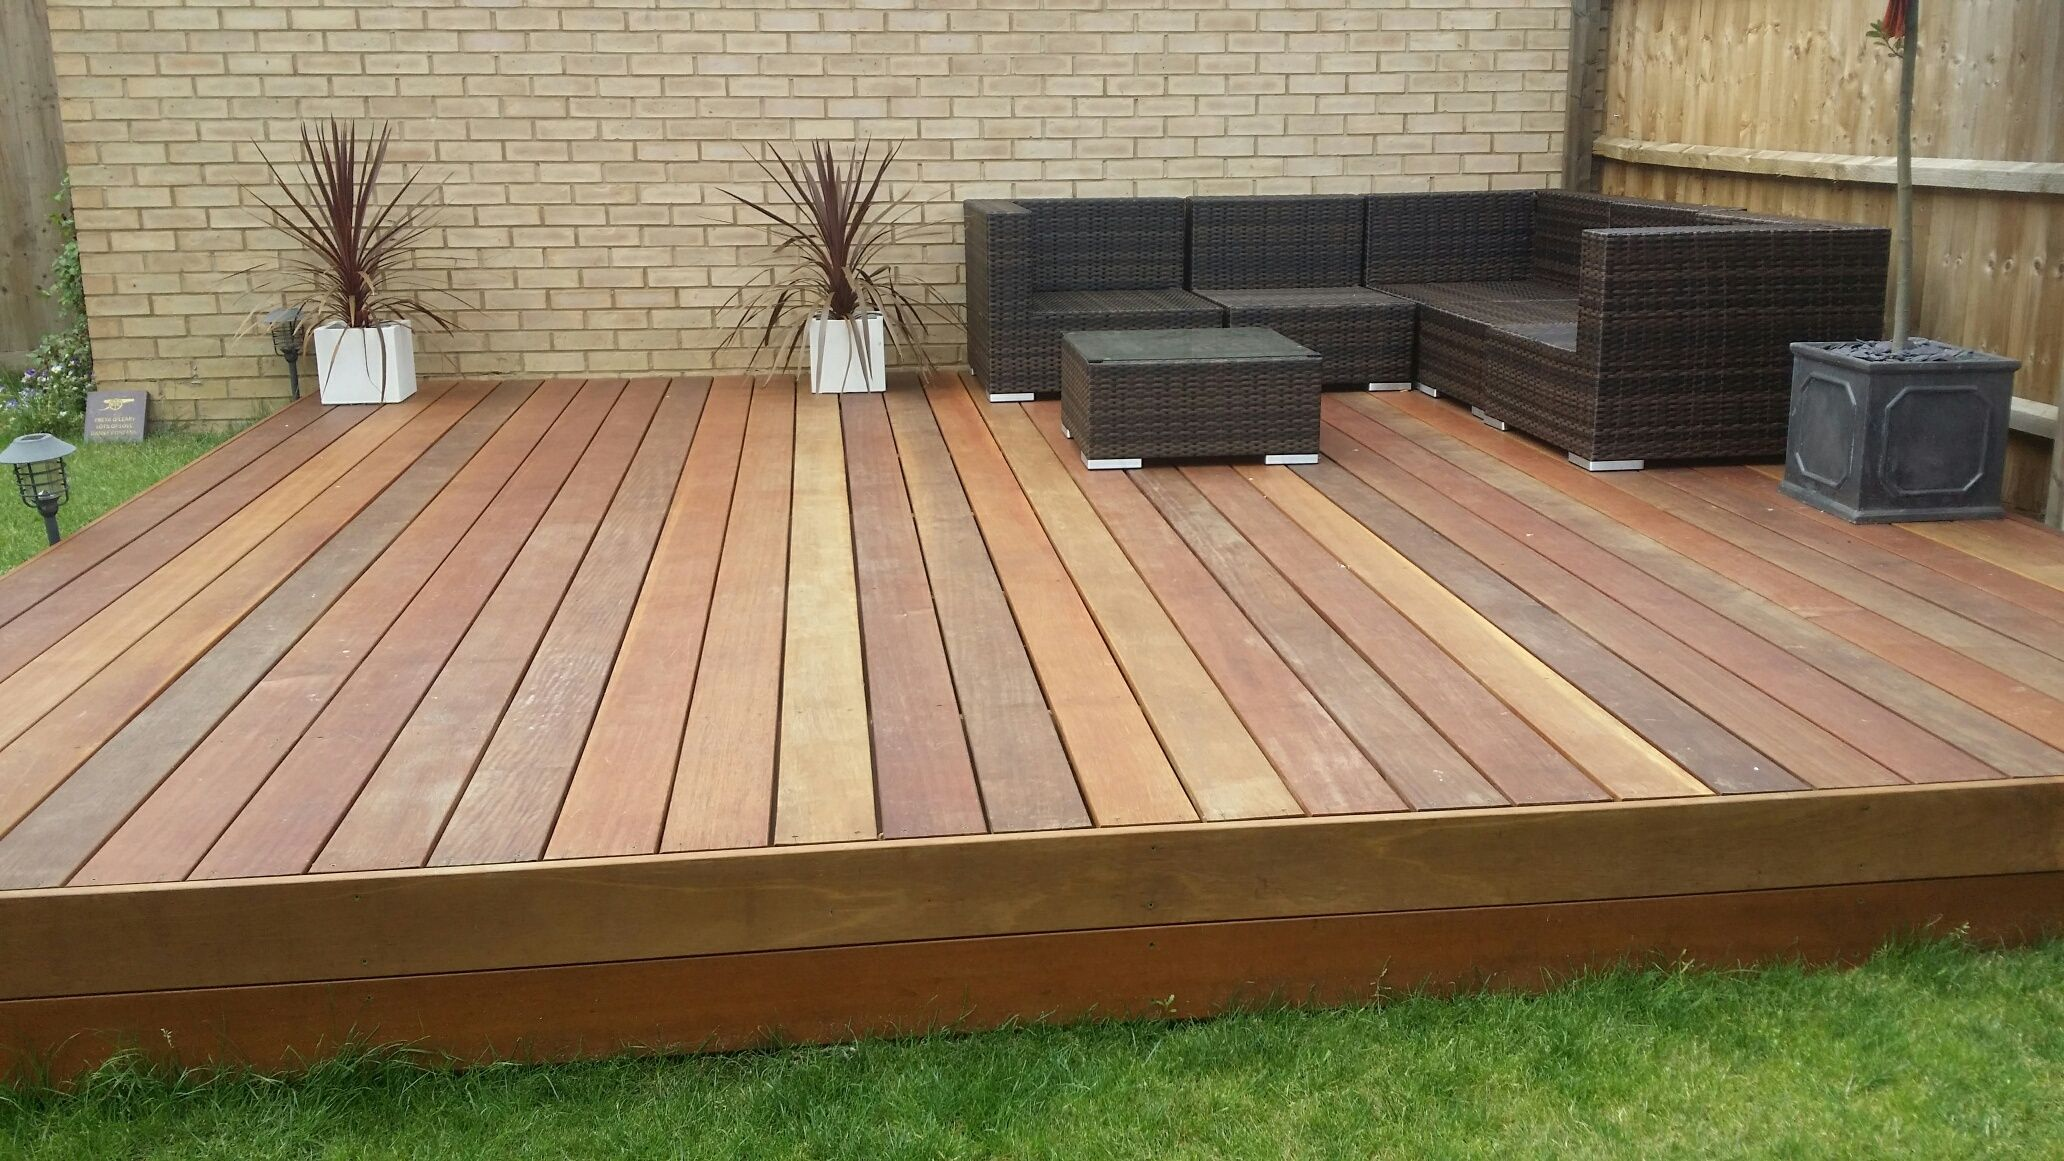 Raised decking ideas uk google search patio for Best material for deck